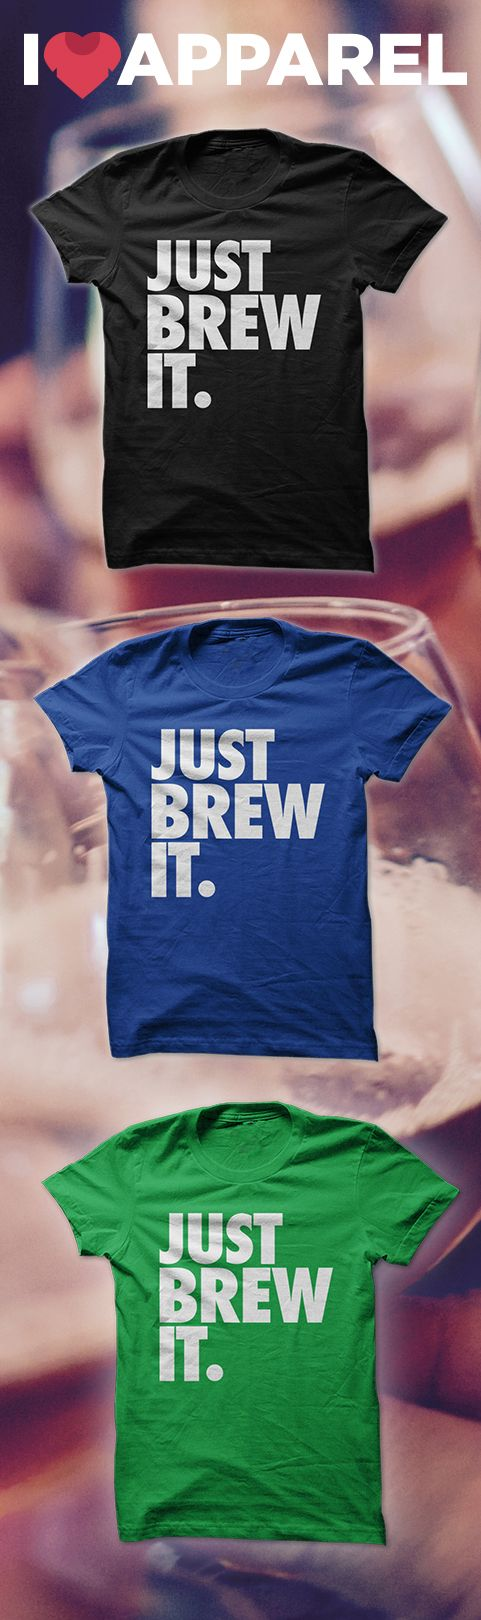 Buy Any 2 Items And Get FREE US Shipping. Check out our entire collection of beer shirts.